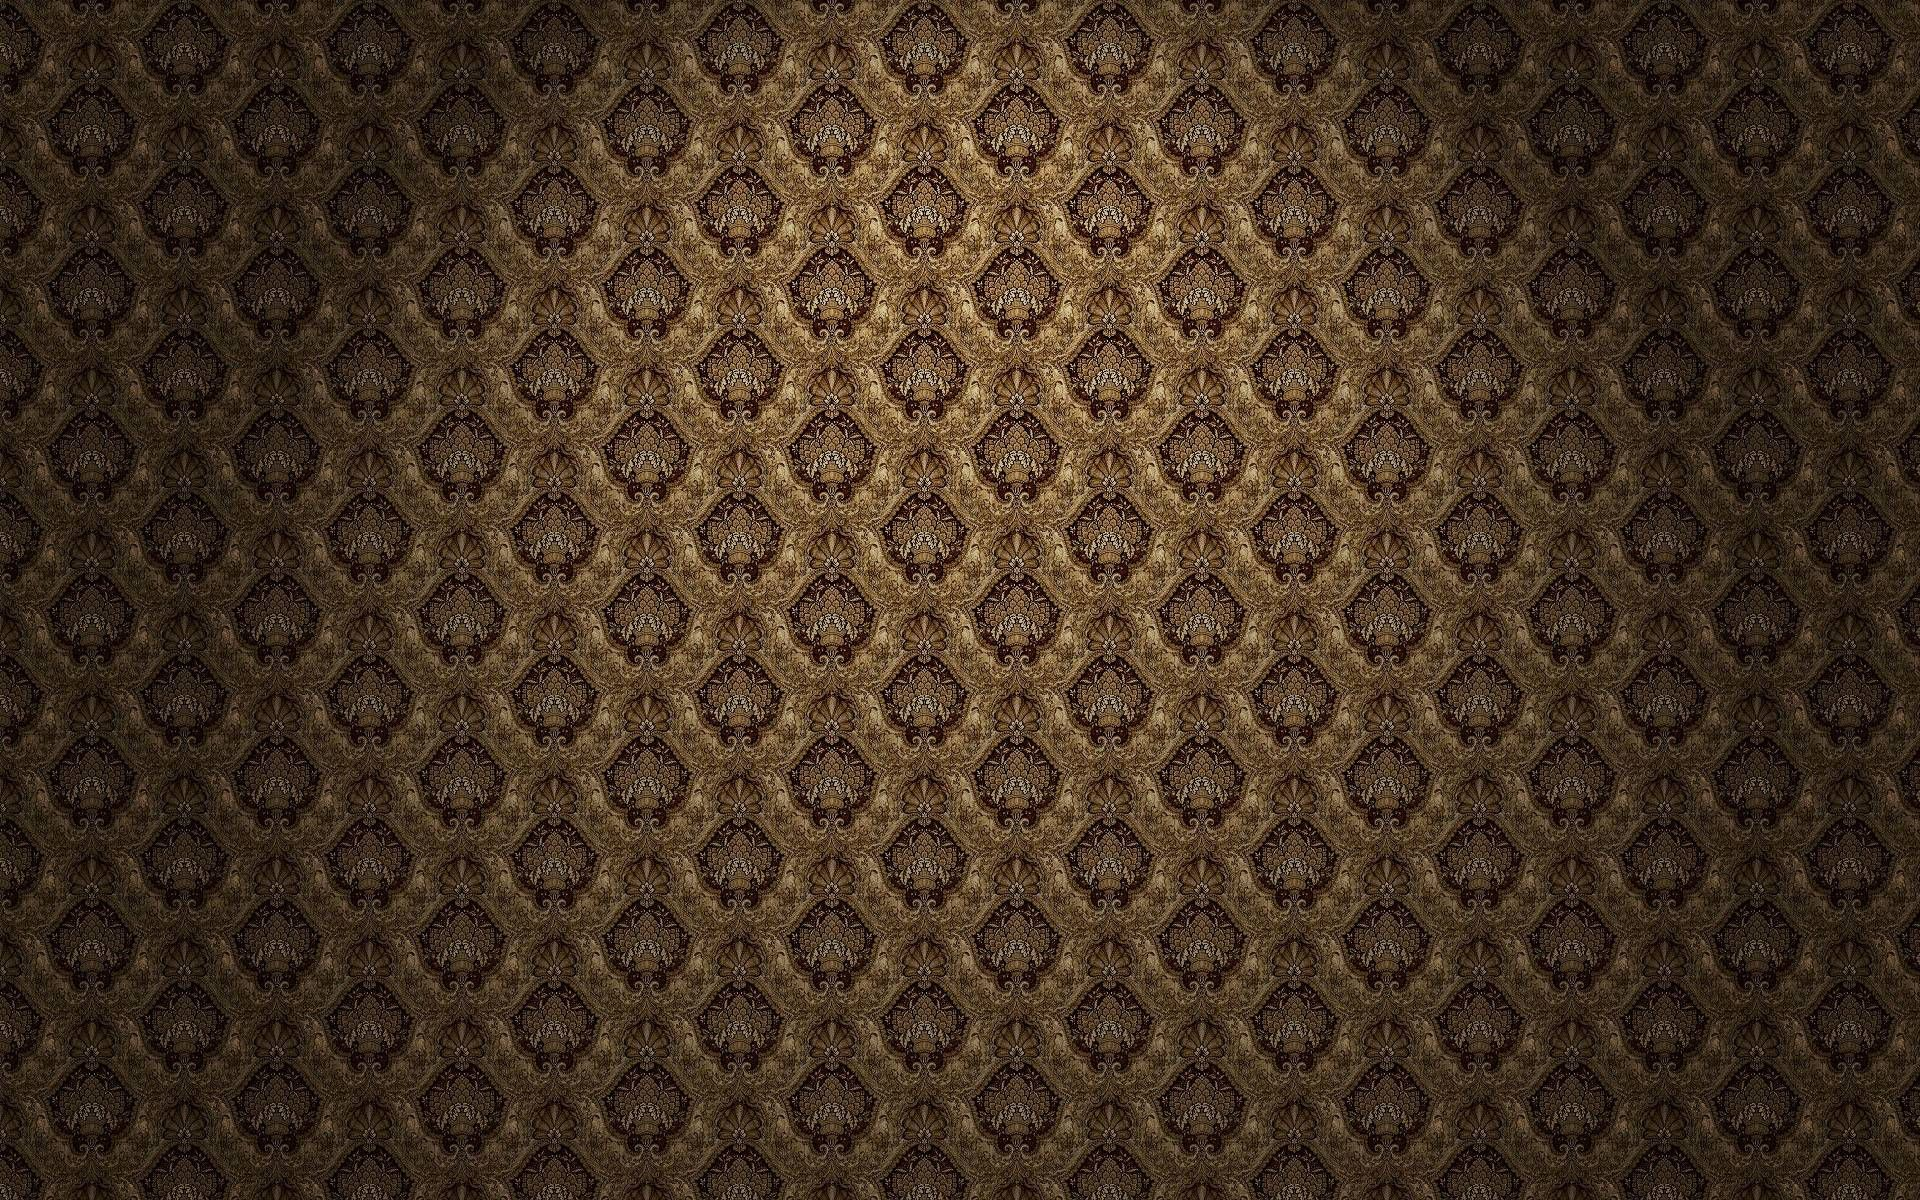 1920s Wallpapers Wallpaper Cave Machinal Pinterest HD Wallpapers Download Free Images Wallpaper [1000image.com]